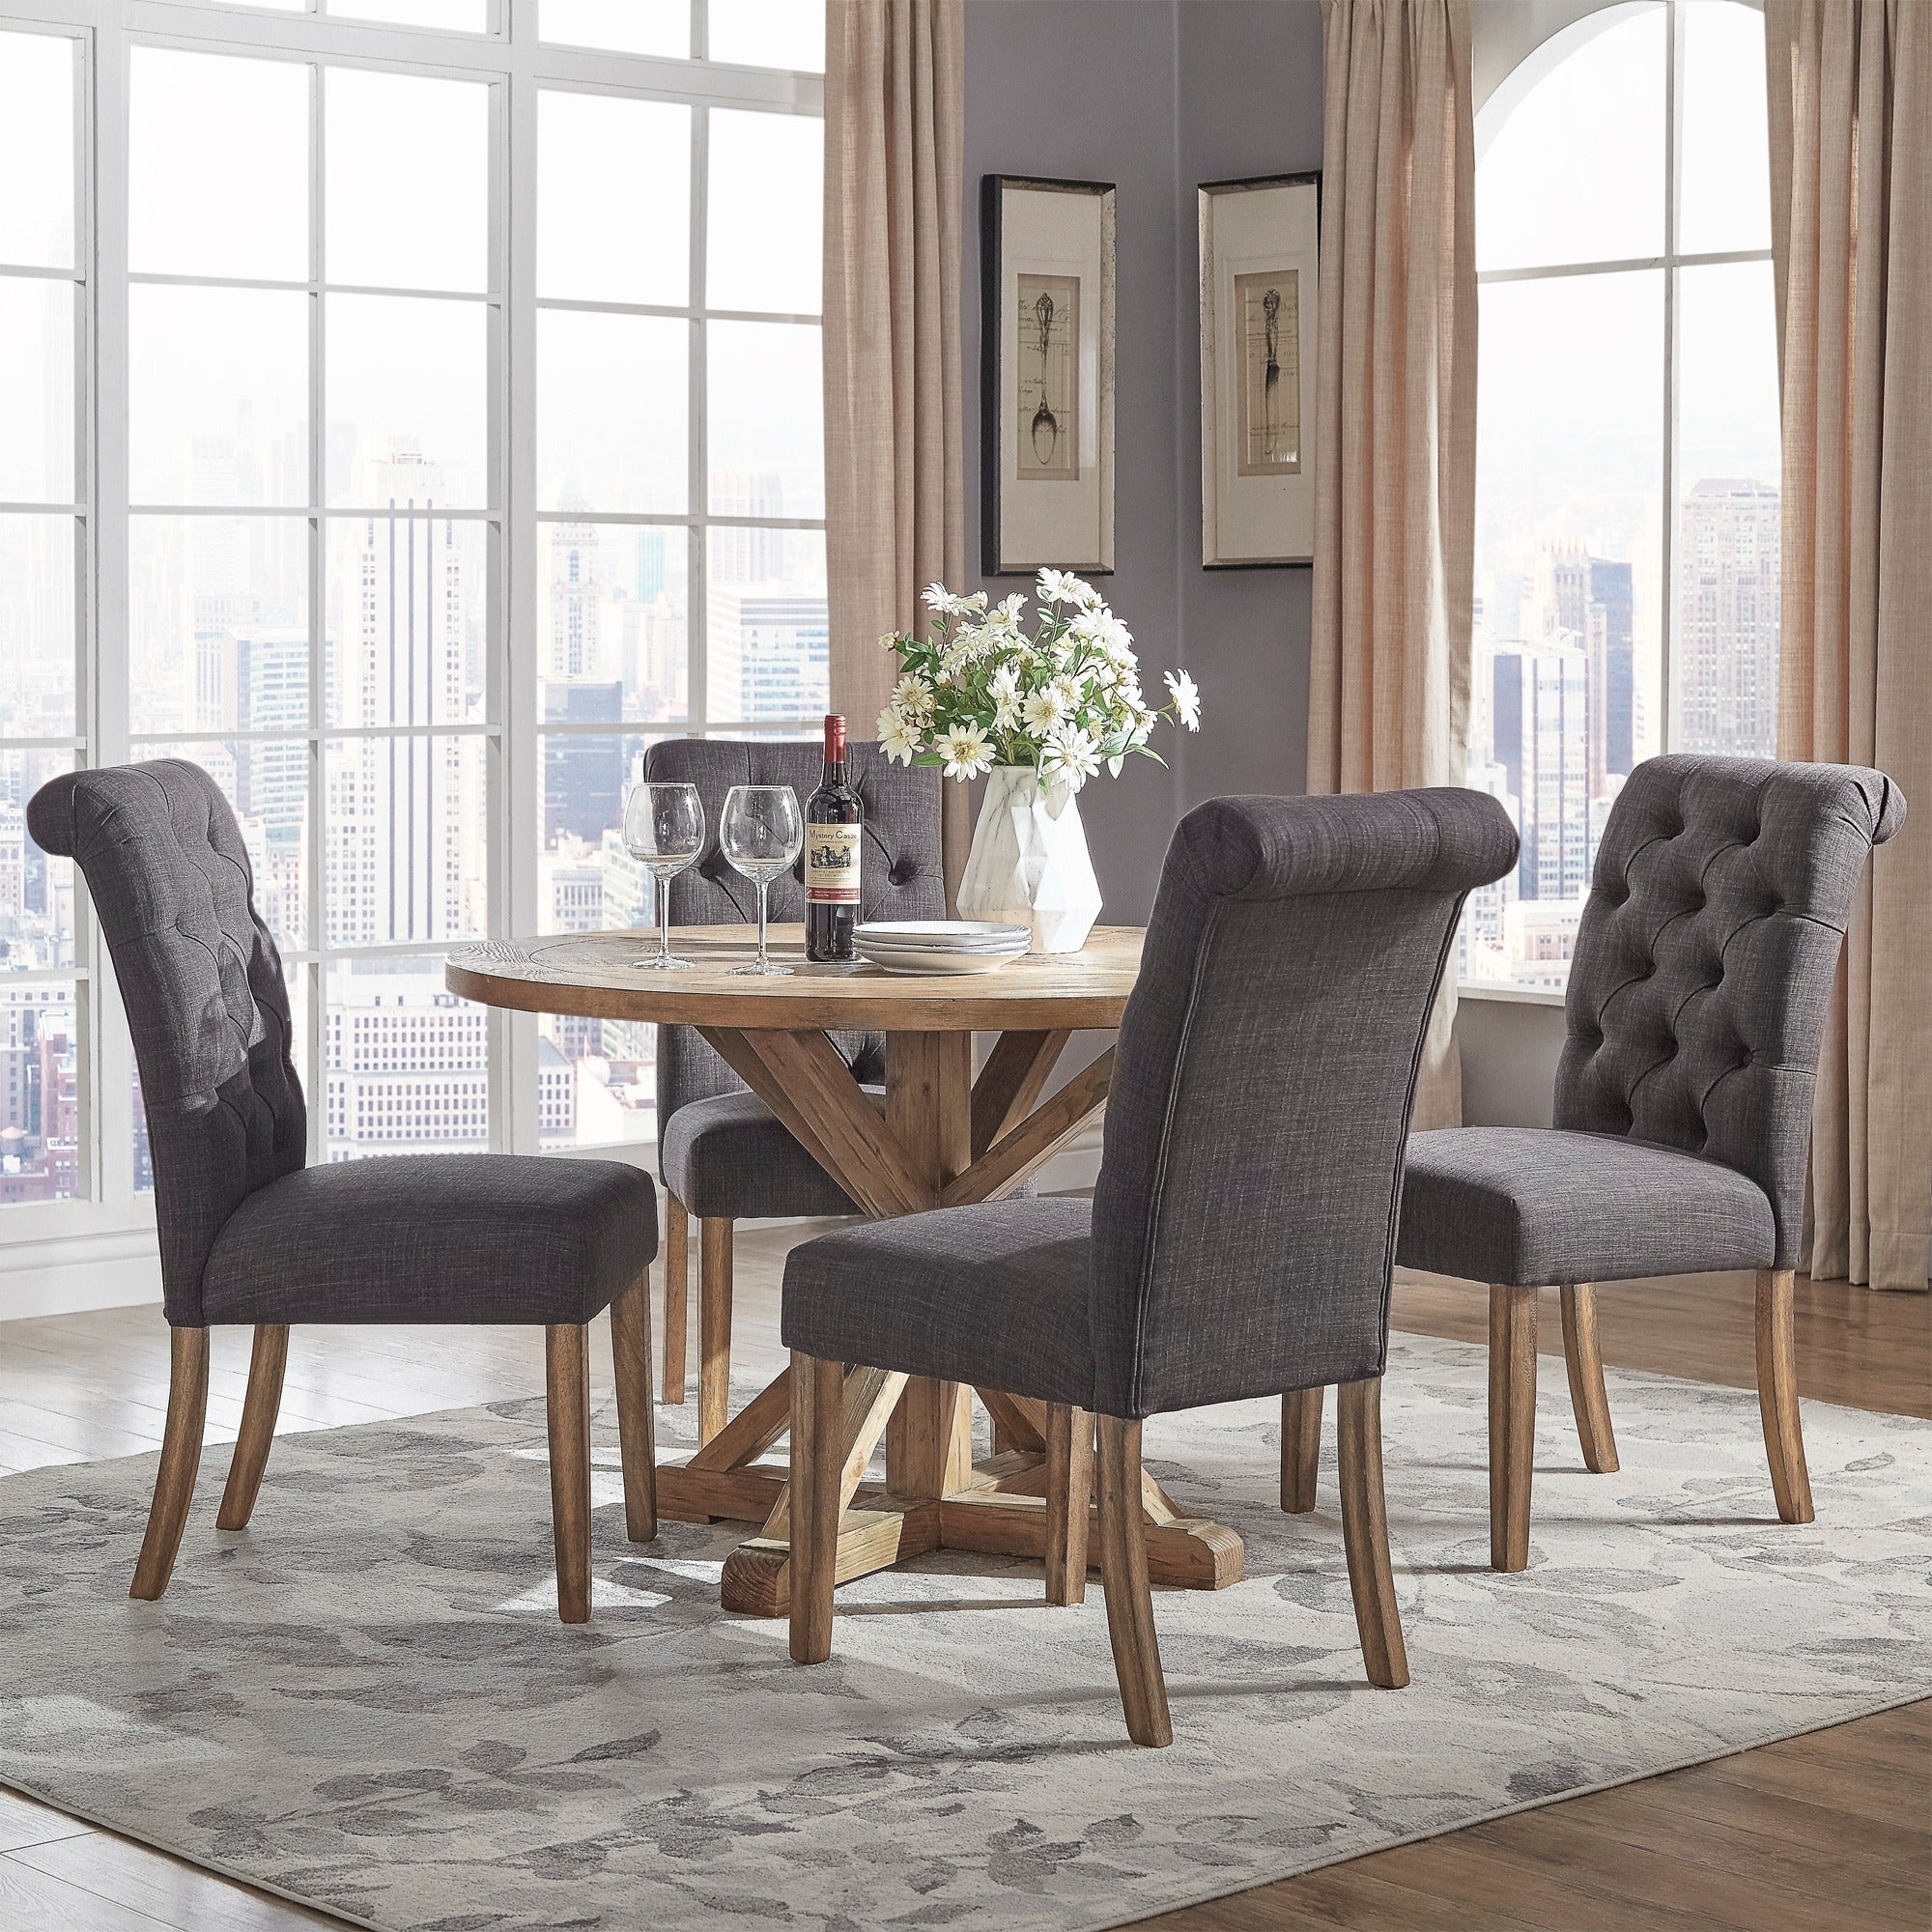 Benchwright Rustic X Base 48 Inch Round Dining Table Set By INSPIRE Q  Artisan   Free Shipping Today   Overstock   20932888